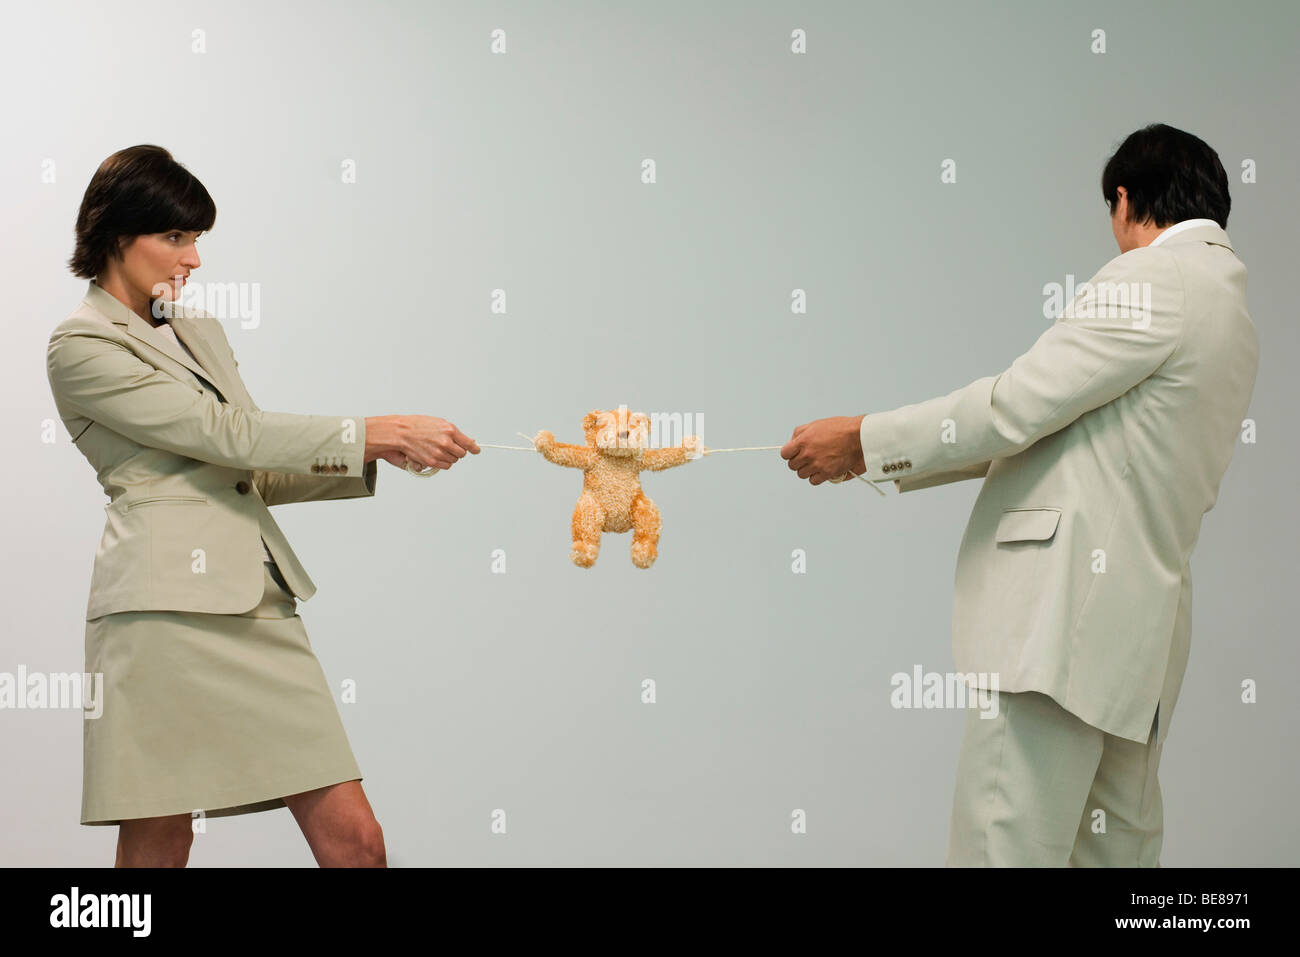 Professional couple playing tug of war with teddy bear - Stock Image